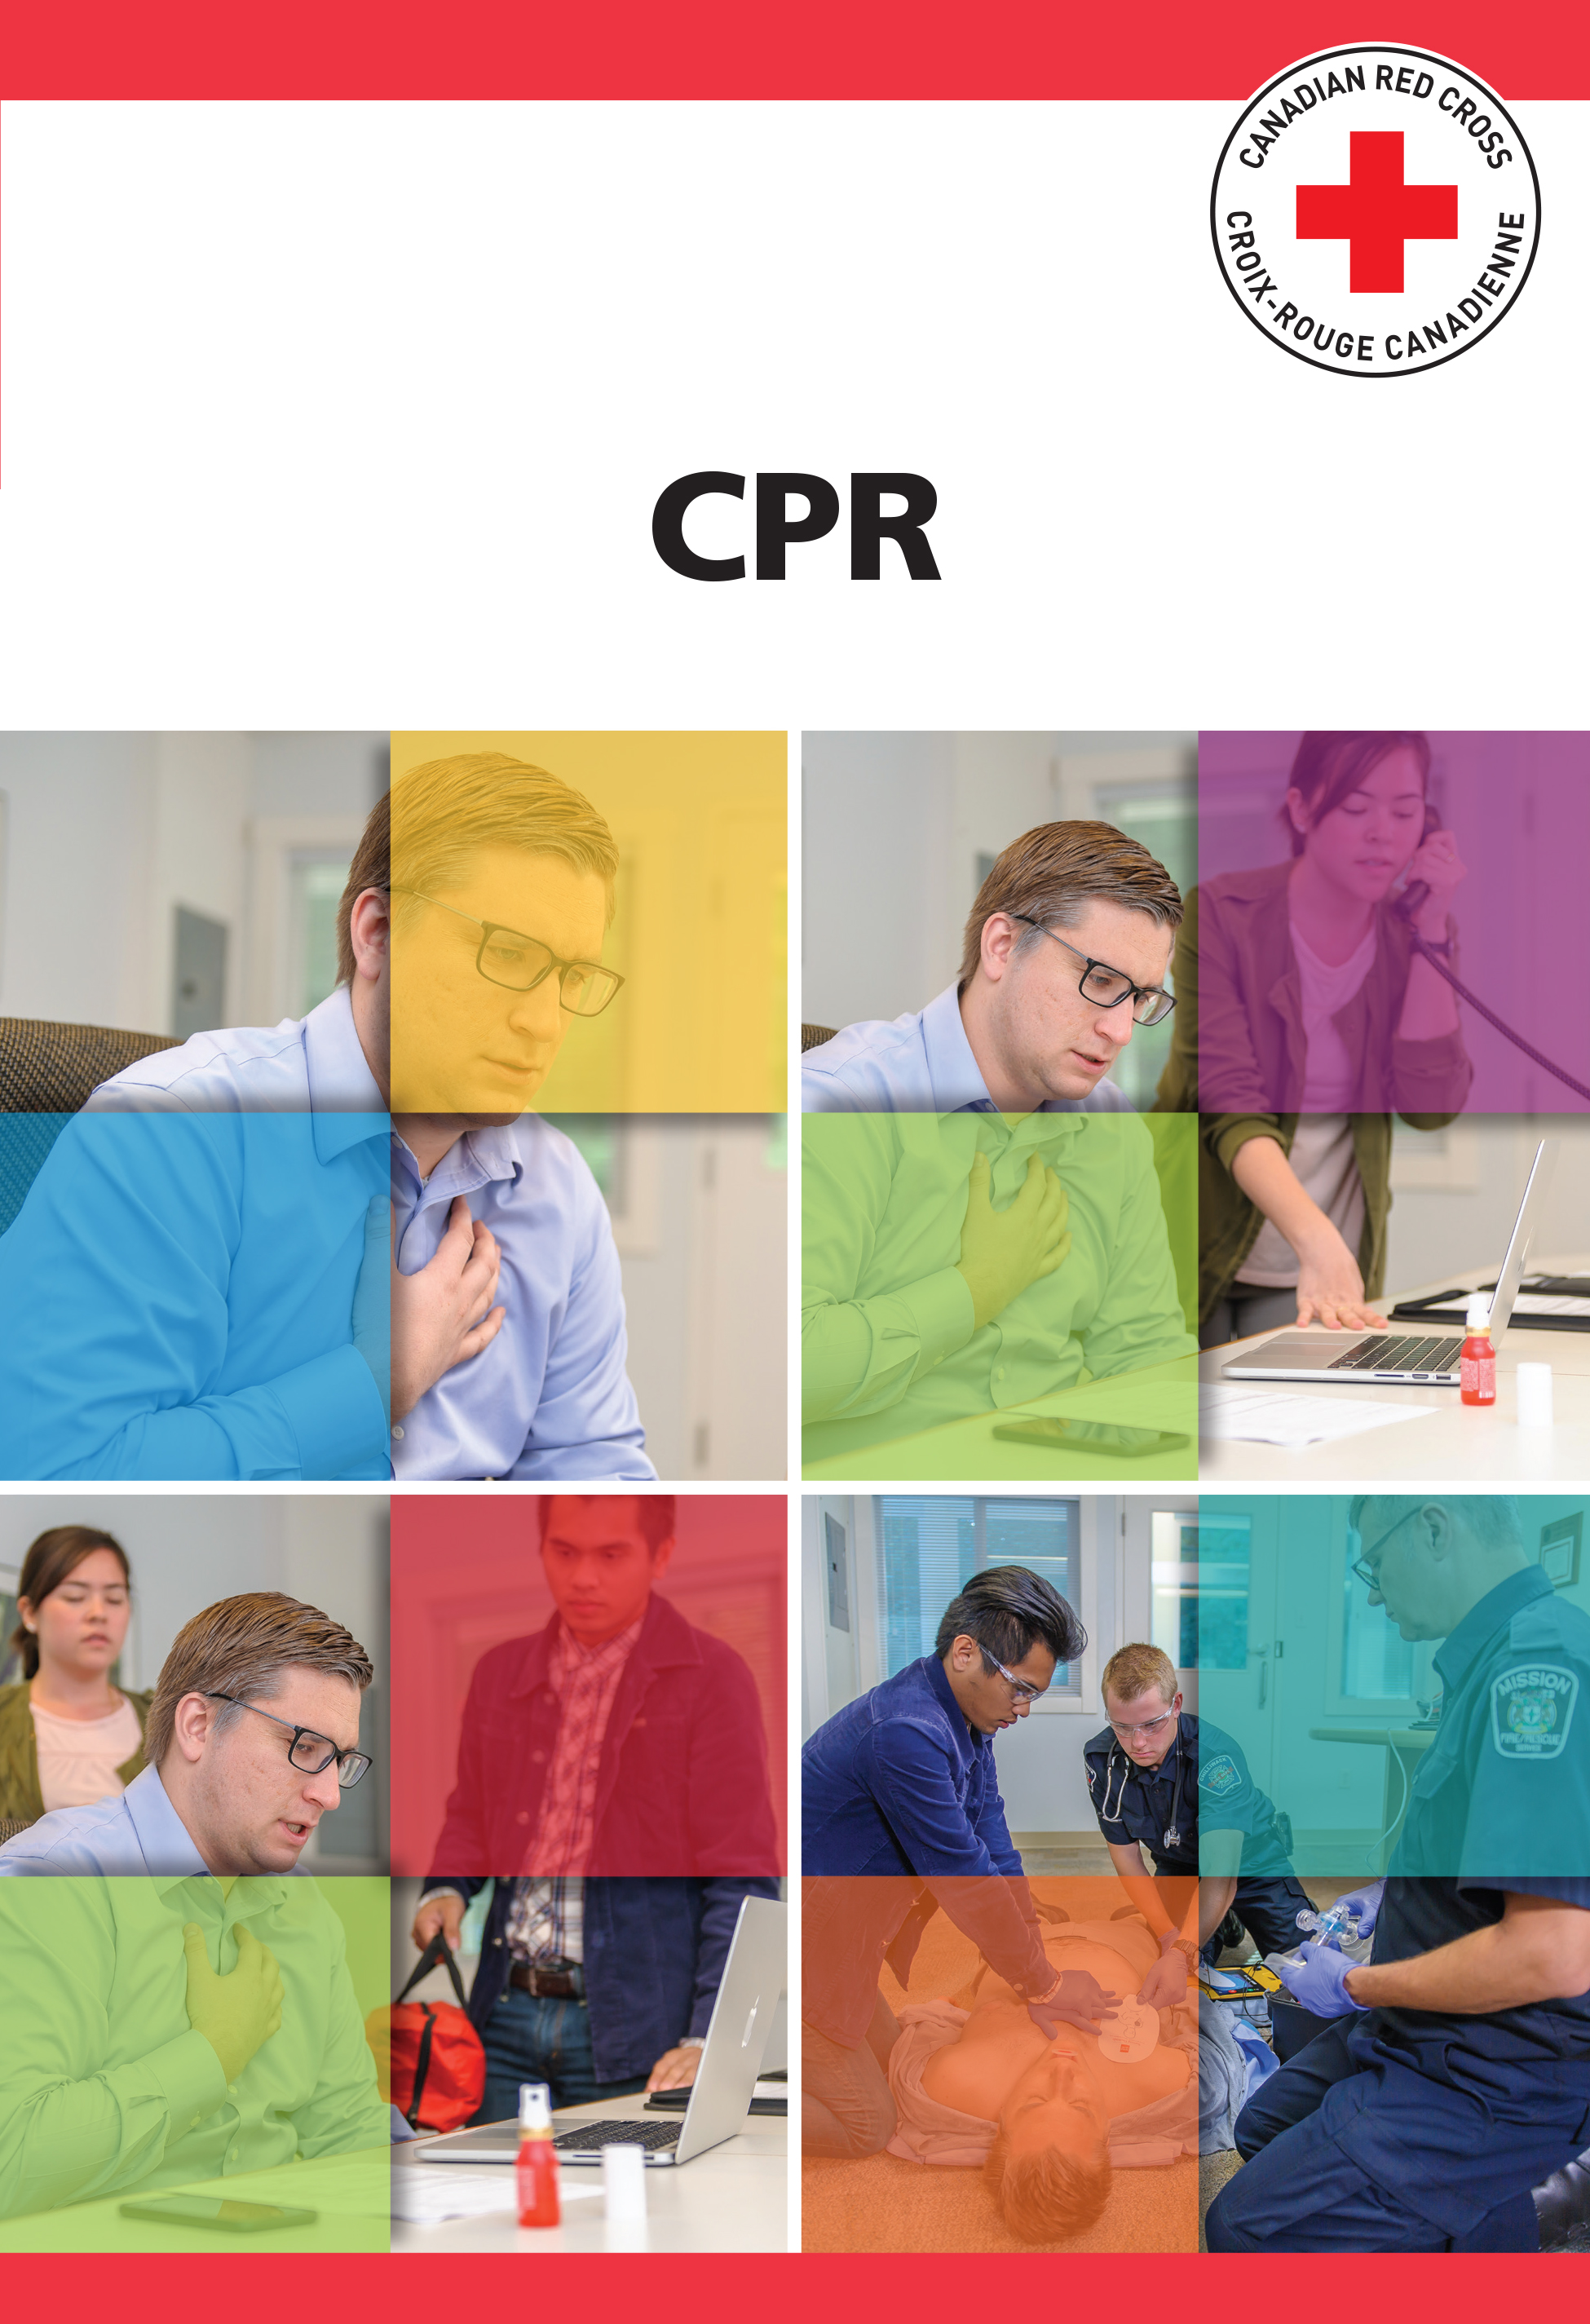 Canadian Red Cross CPR Manual image